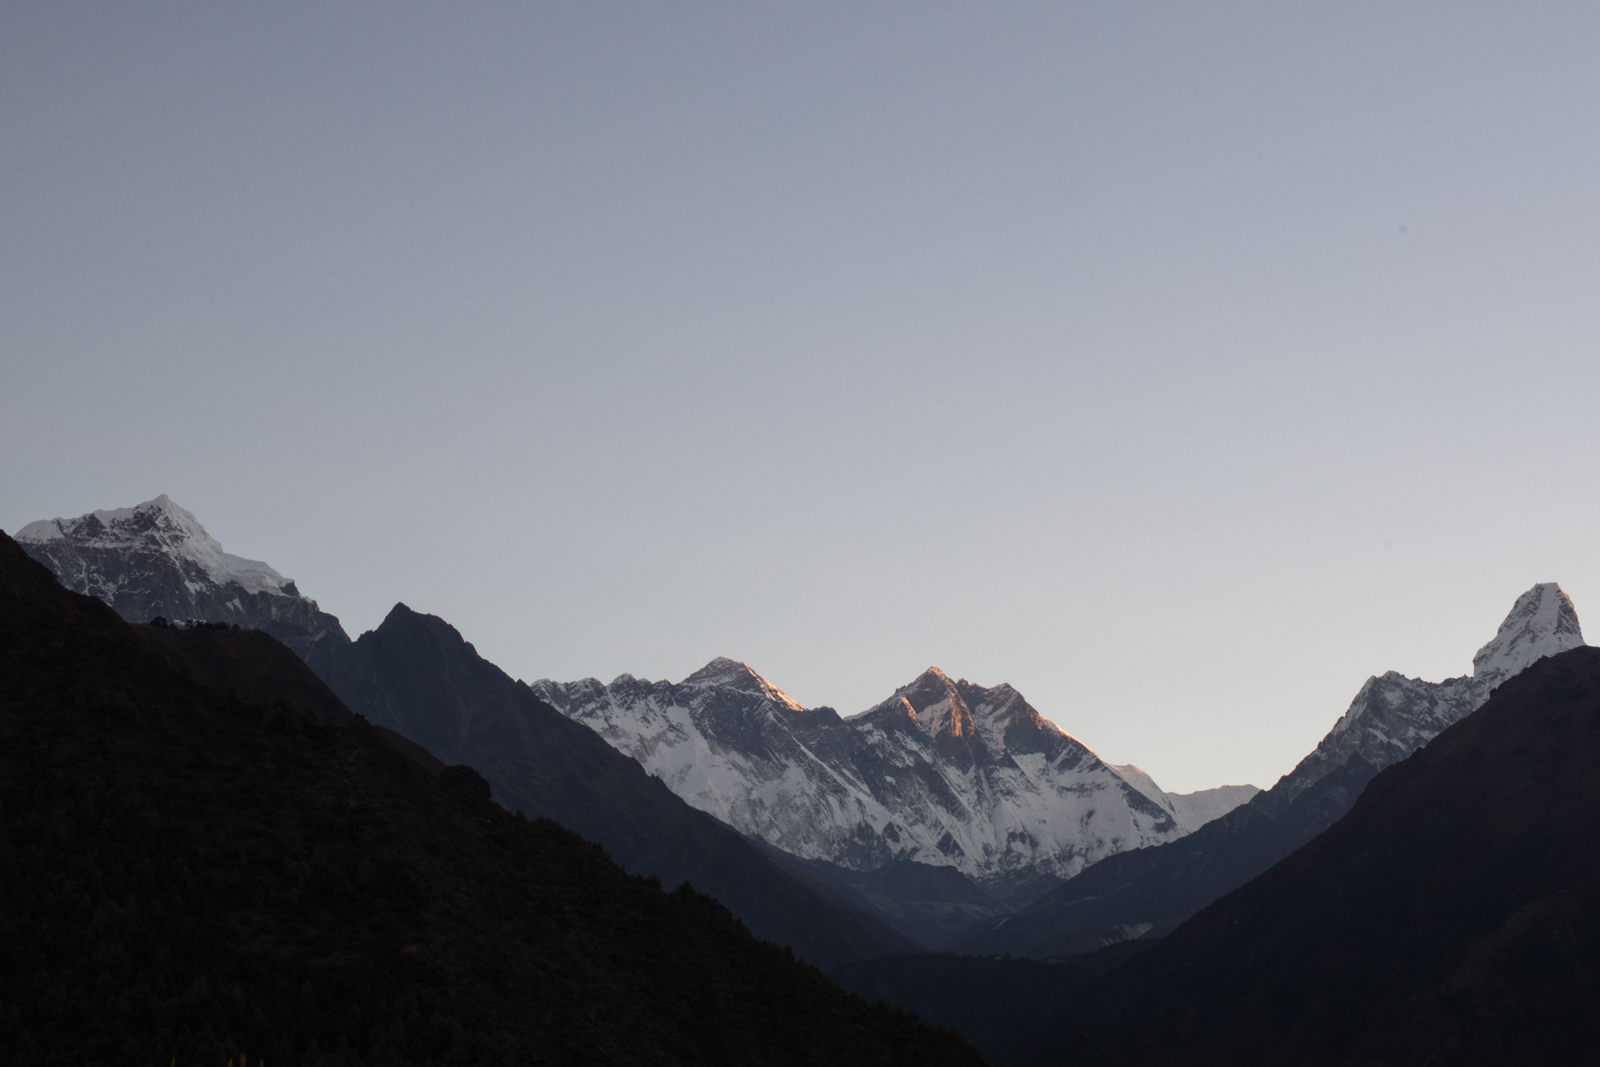 Alpine glow.  Left to Right: Taboche 6,495 m / 21,309 ft, Nuptse 7,861 m / 25,791 ft, Everest 8,848m / 29,029 ft,  Lhotse 8,516 m / 27,940 ft, Shartse 7,457 m / 24,465 ft  Ama Dablam 6,856 m / 22,493 ft. (Elevation credit: PeakFinder)